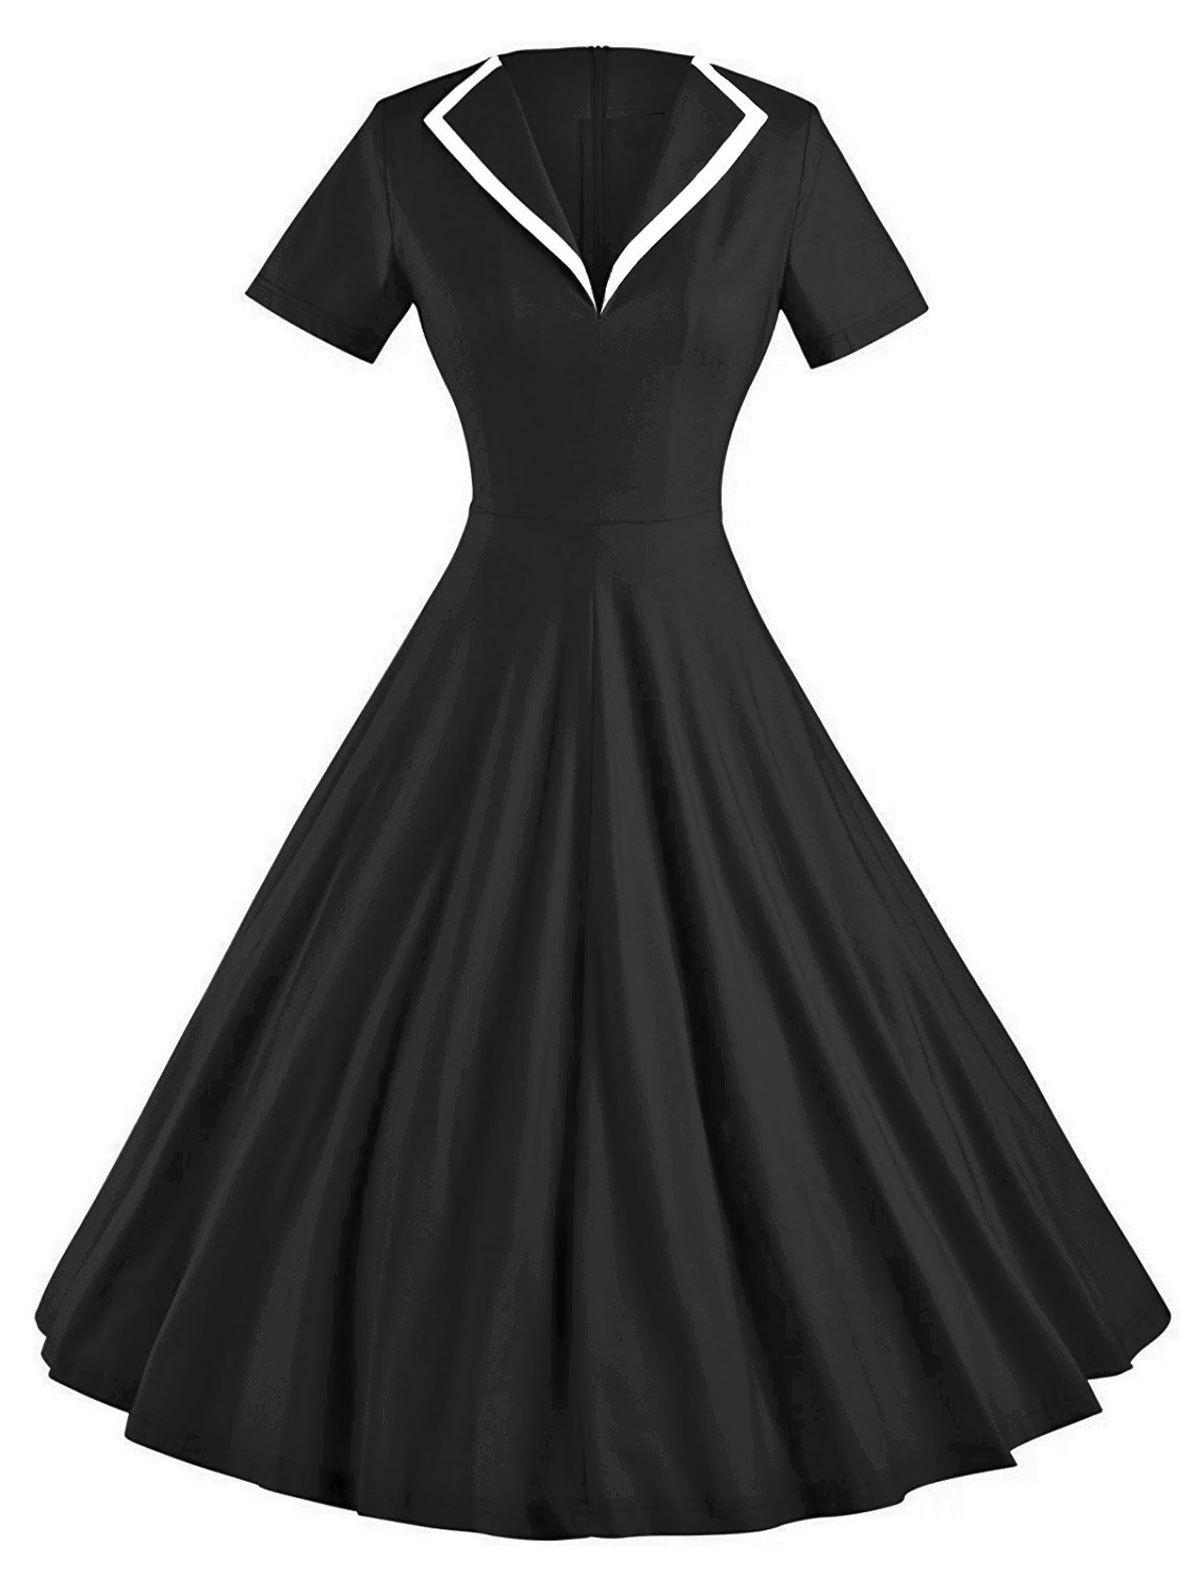 Shop Vintage Skate Party Pin Up Dress